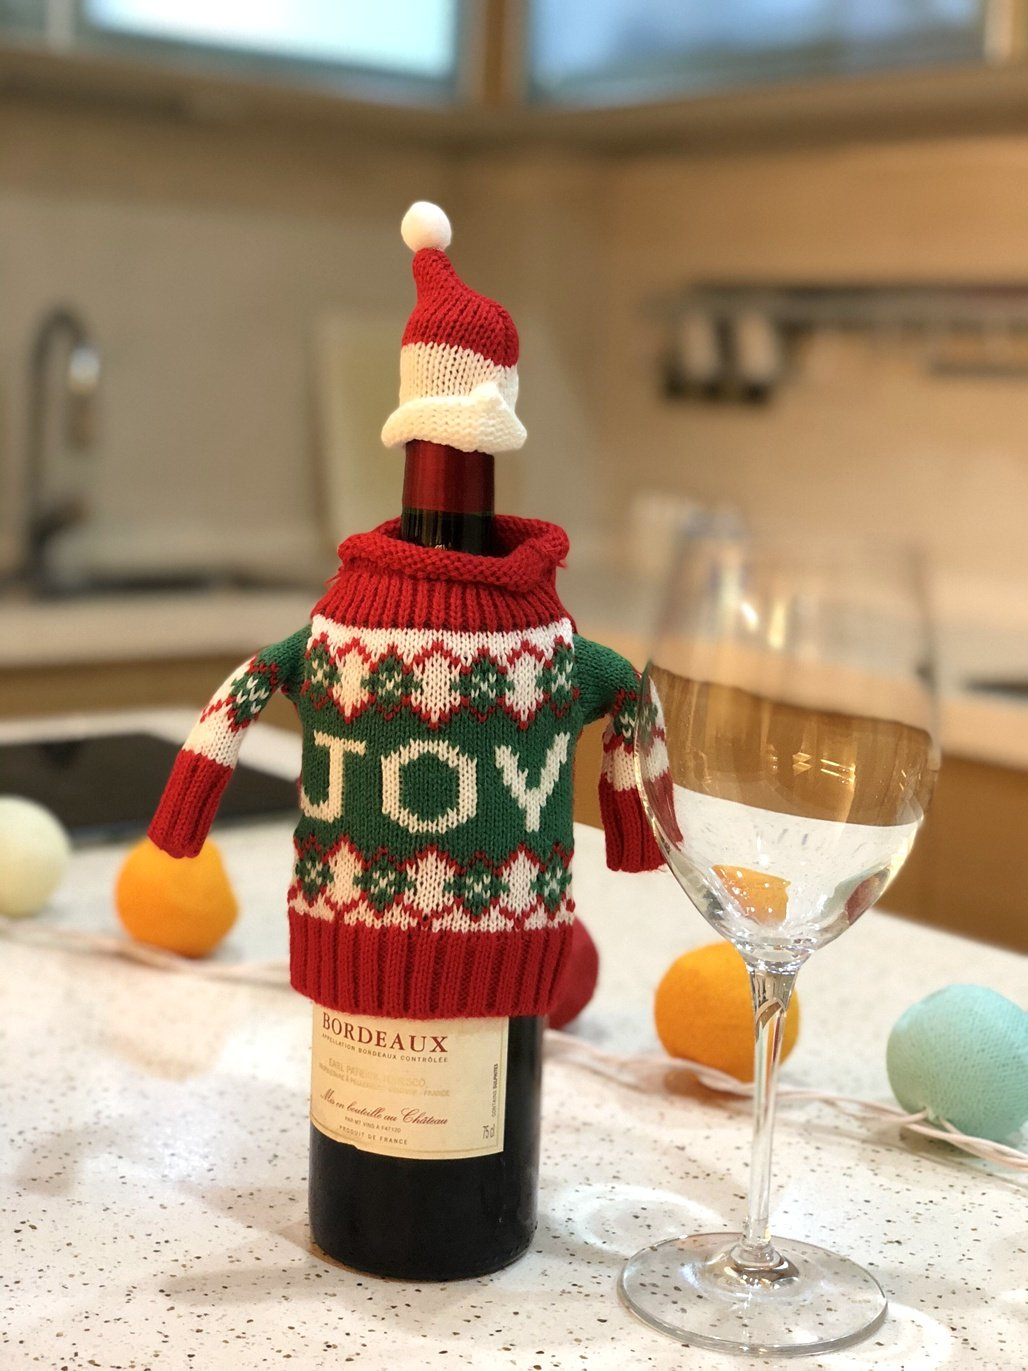 FEFEHOME Christmas Wine Bottle Cover Gift Warping Ugly Sweater (Set of 4) -(F) by FEFEHOME (Image #4)